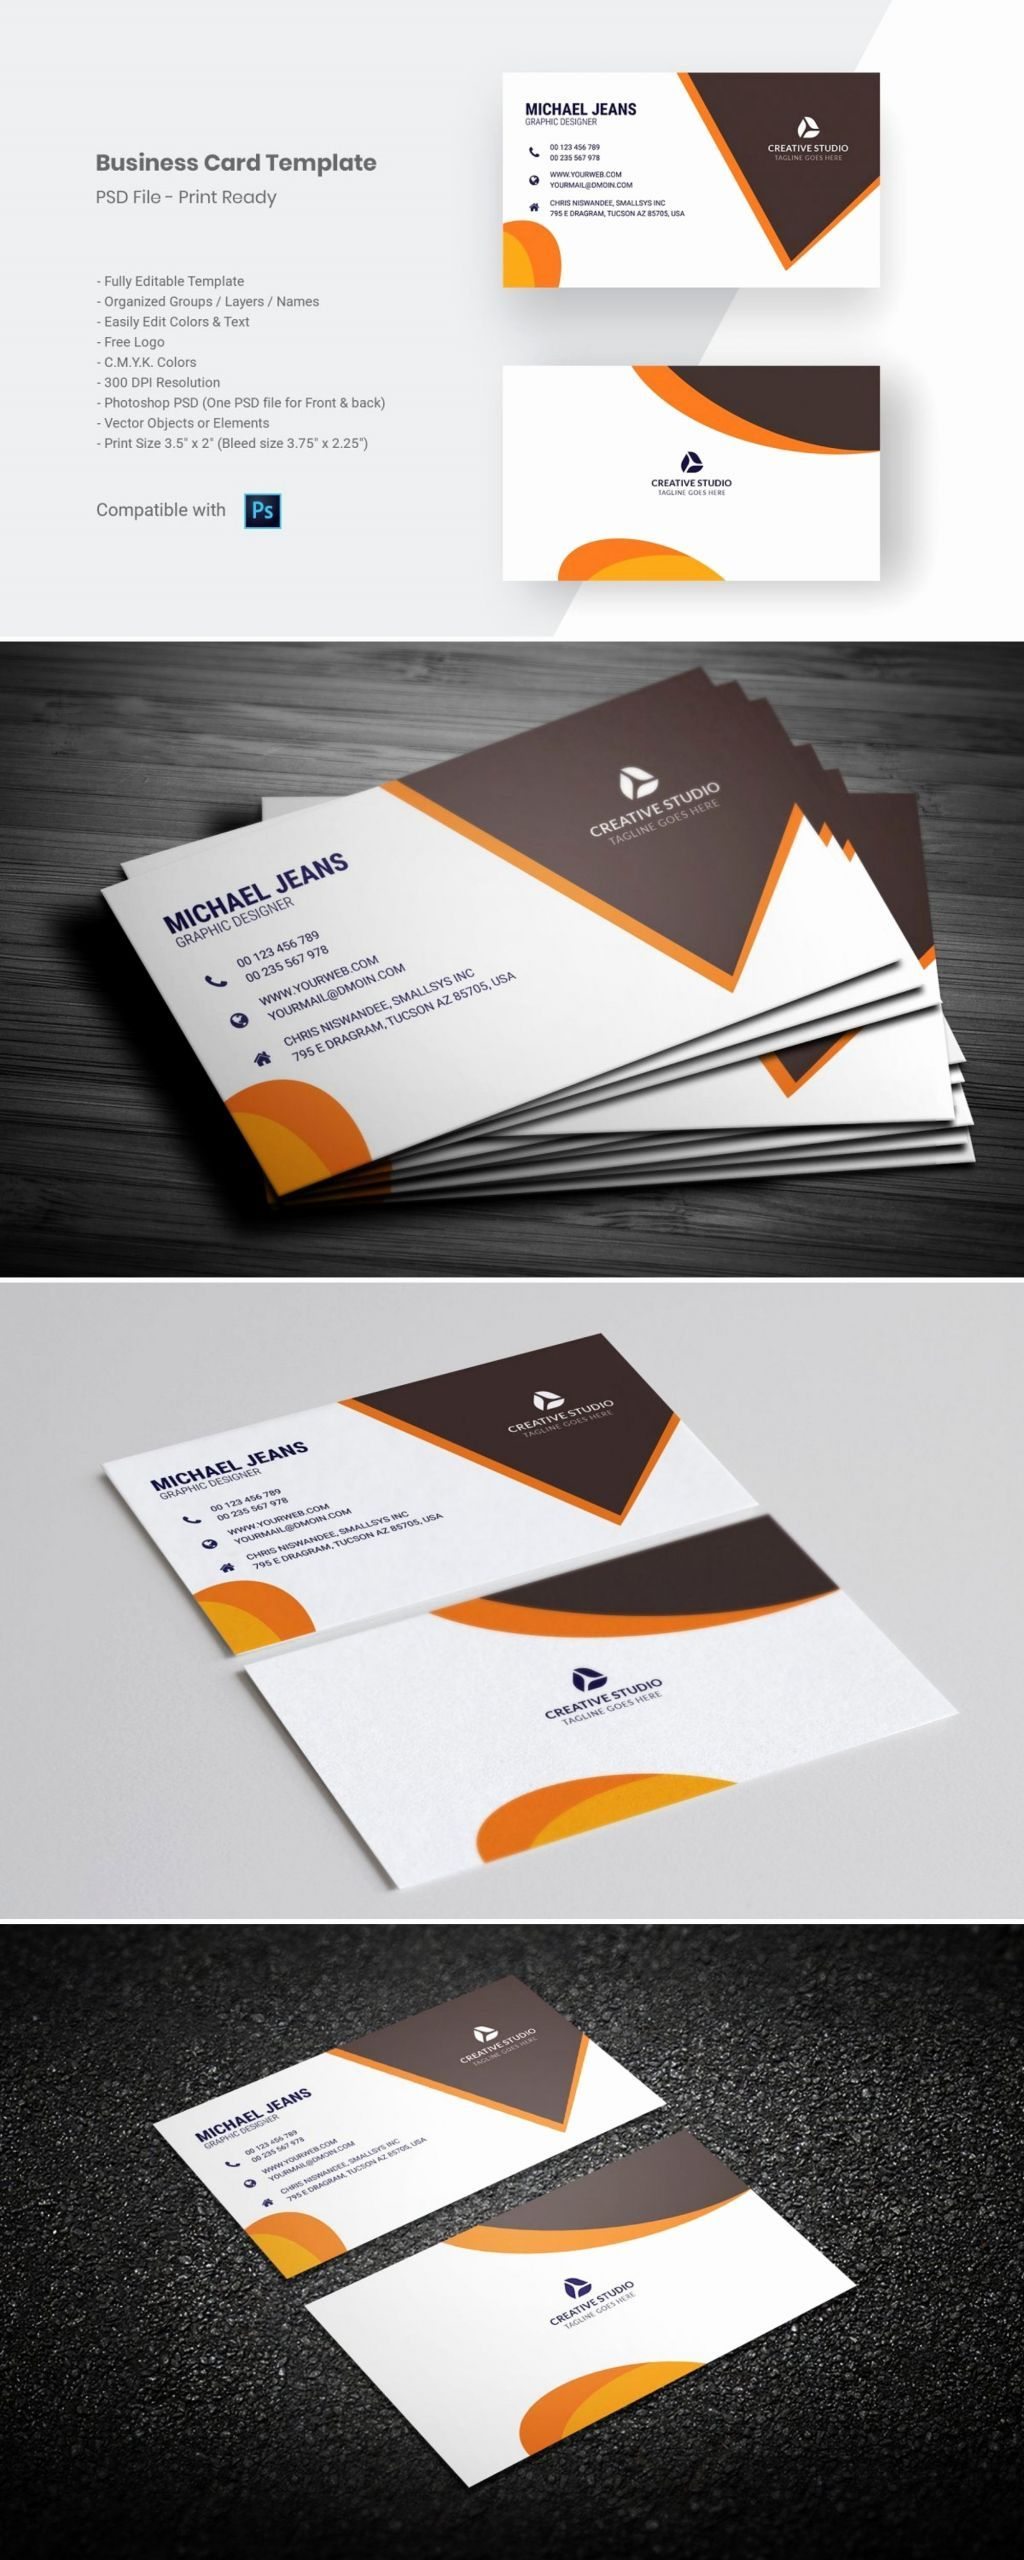 Professional Business Card Template Best Of Modern Business Card Template Business Card Template Design Modern Business Cards Business Card Template